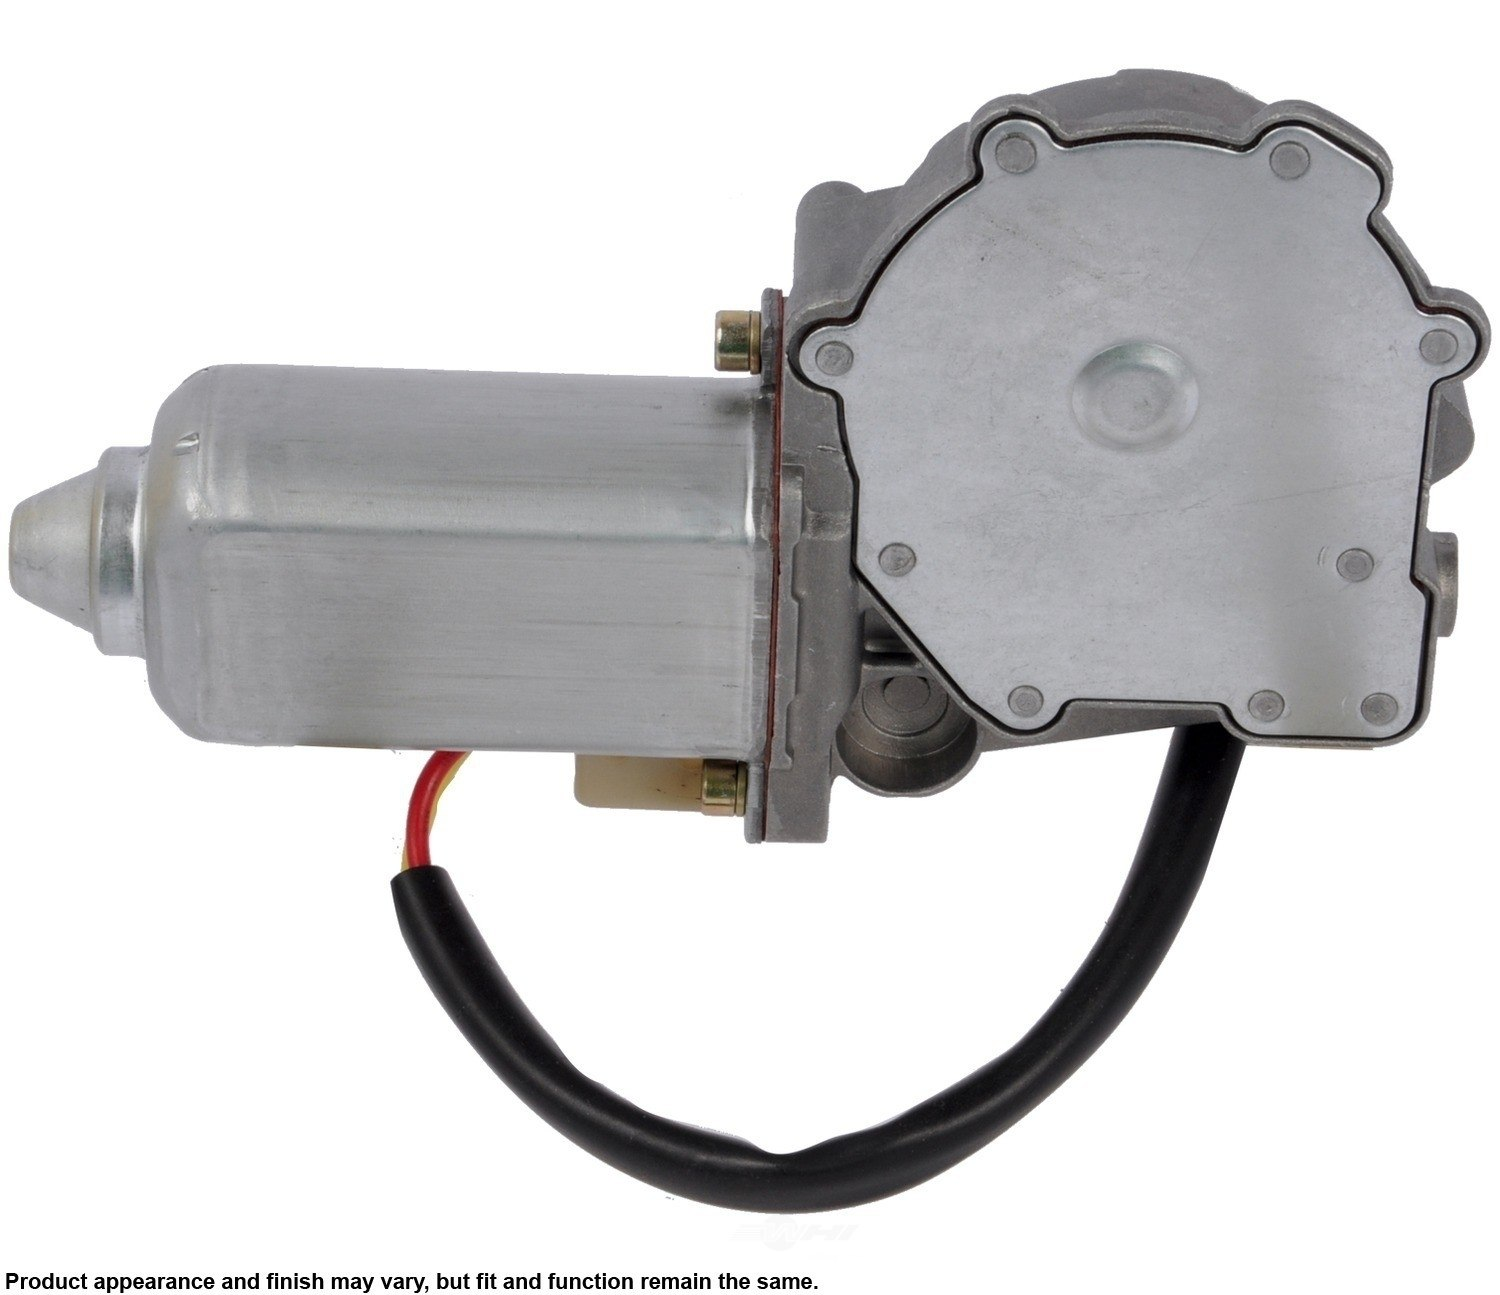 CARDONE NEW - Window Lift Motor (Front Right) - A1S 82-921